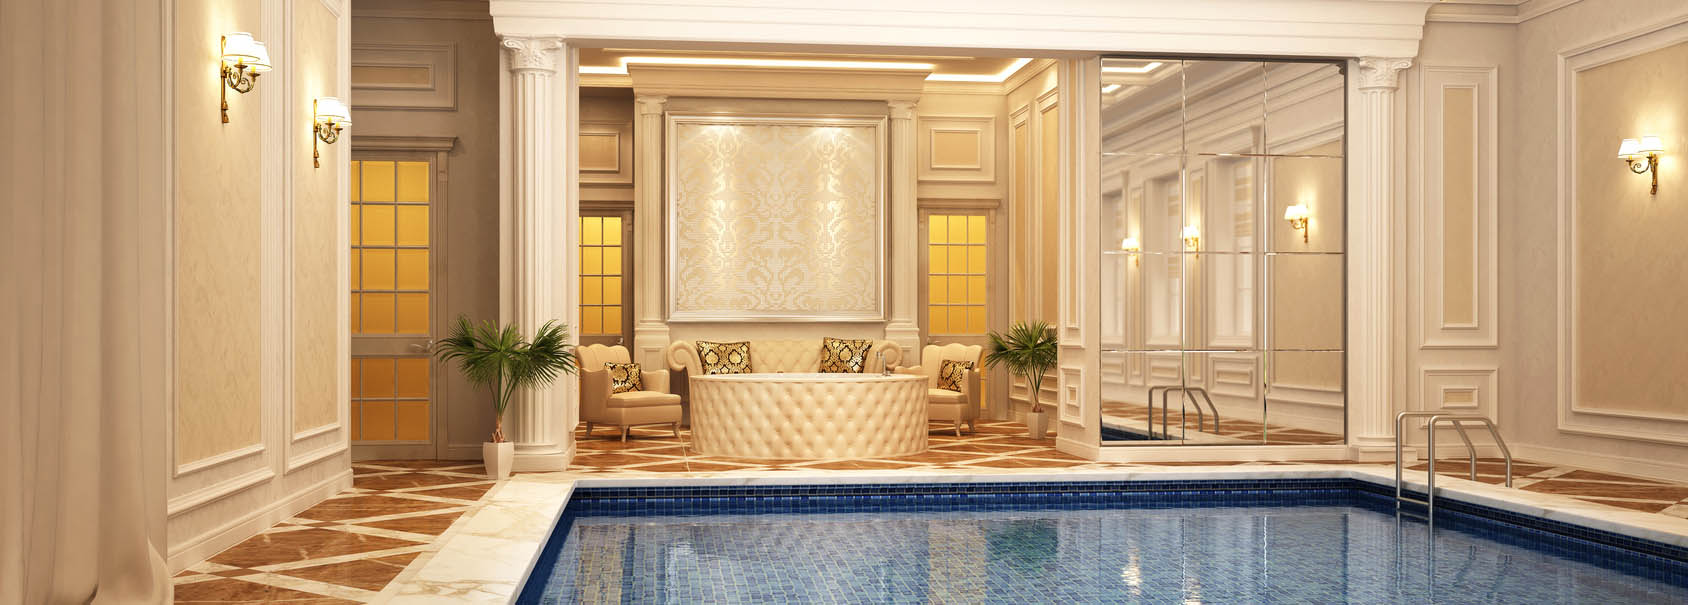 Classic swimming pool of luxury hotel